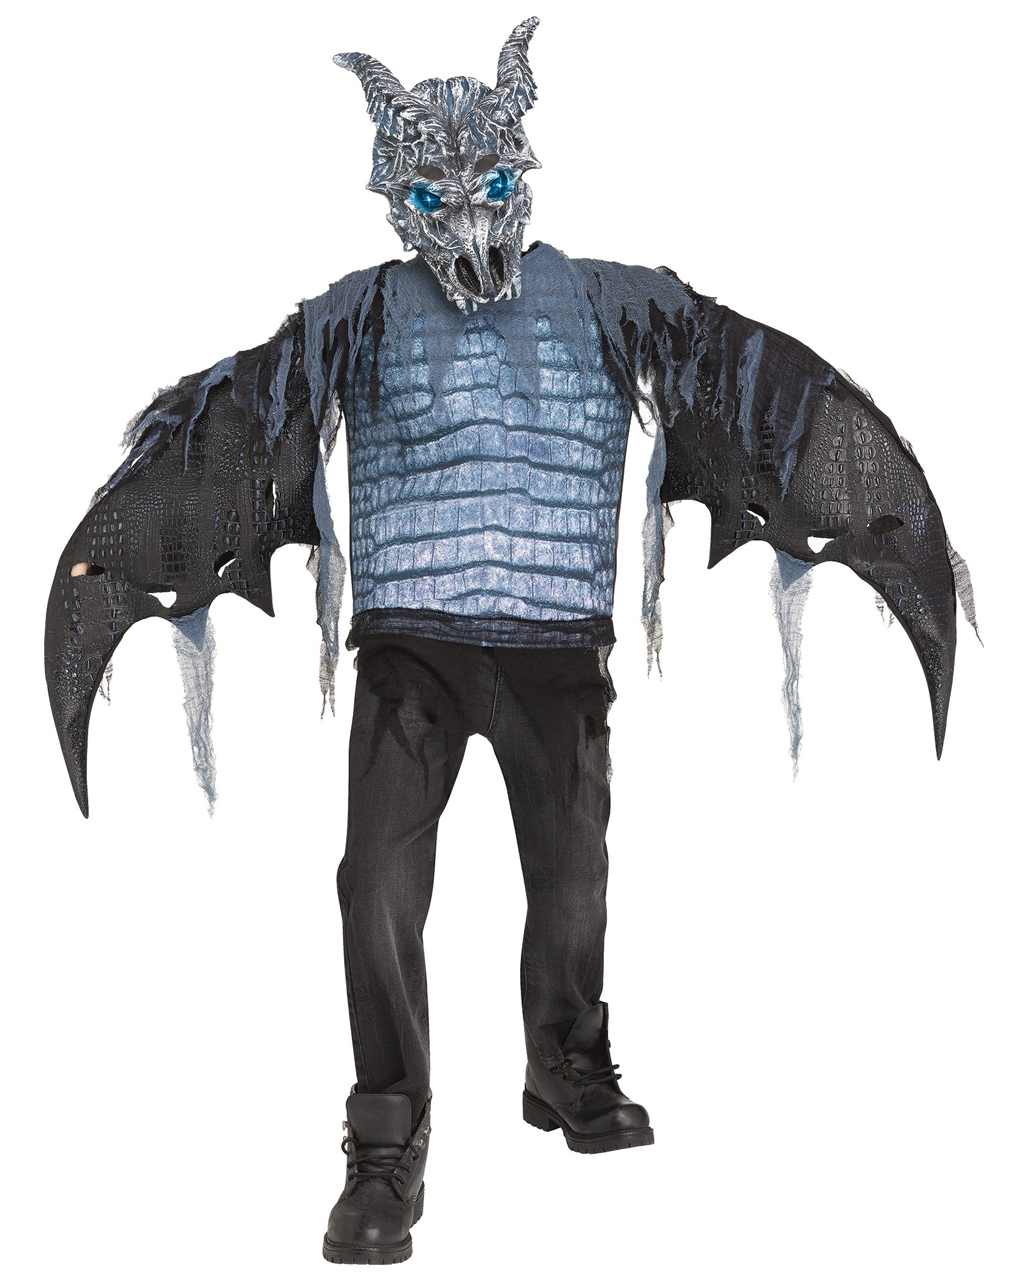 ice dragon kids costume with leds for halloween | horror-shop